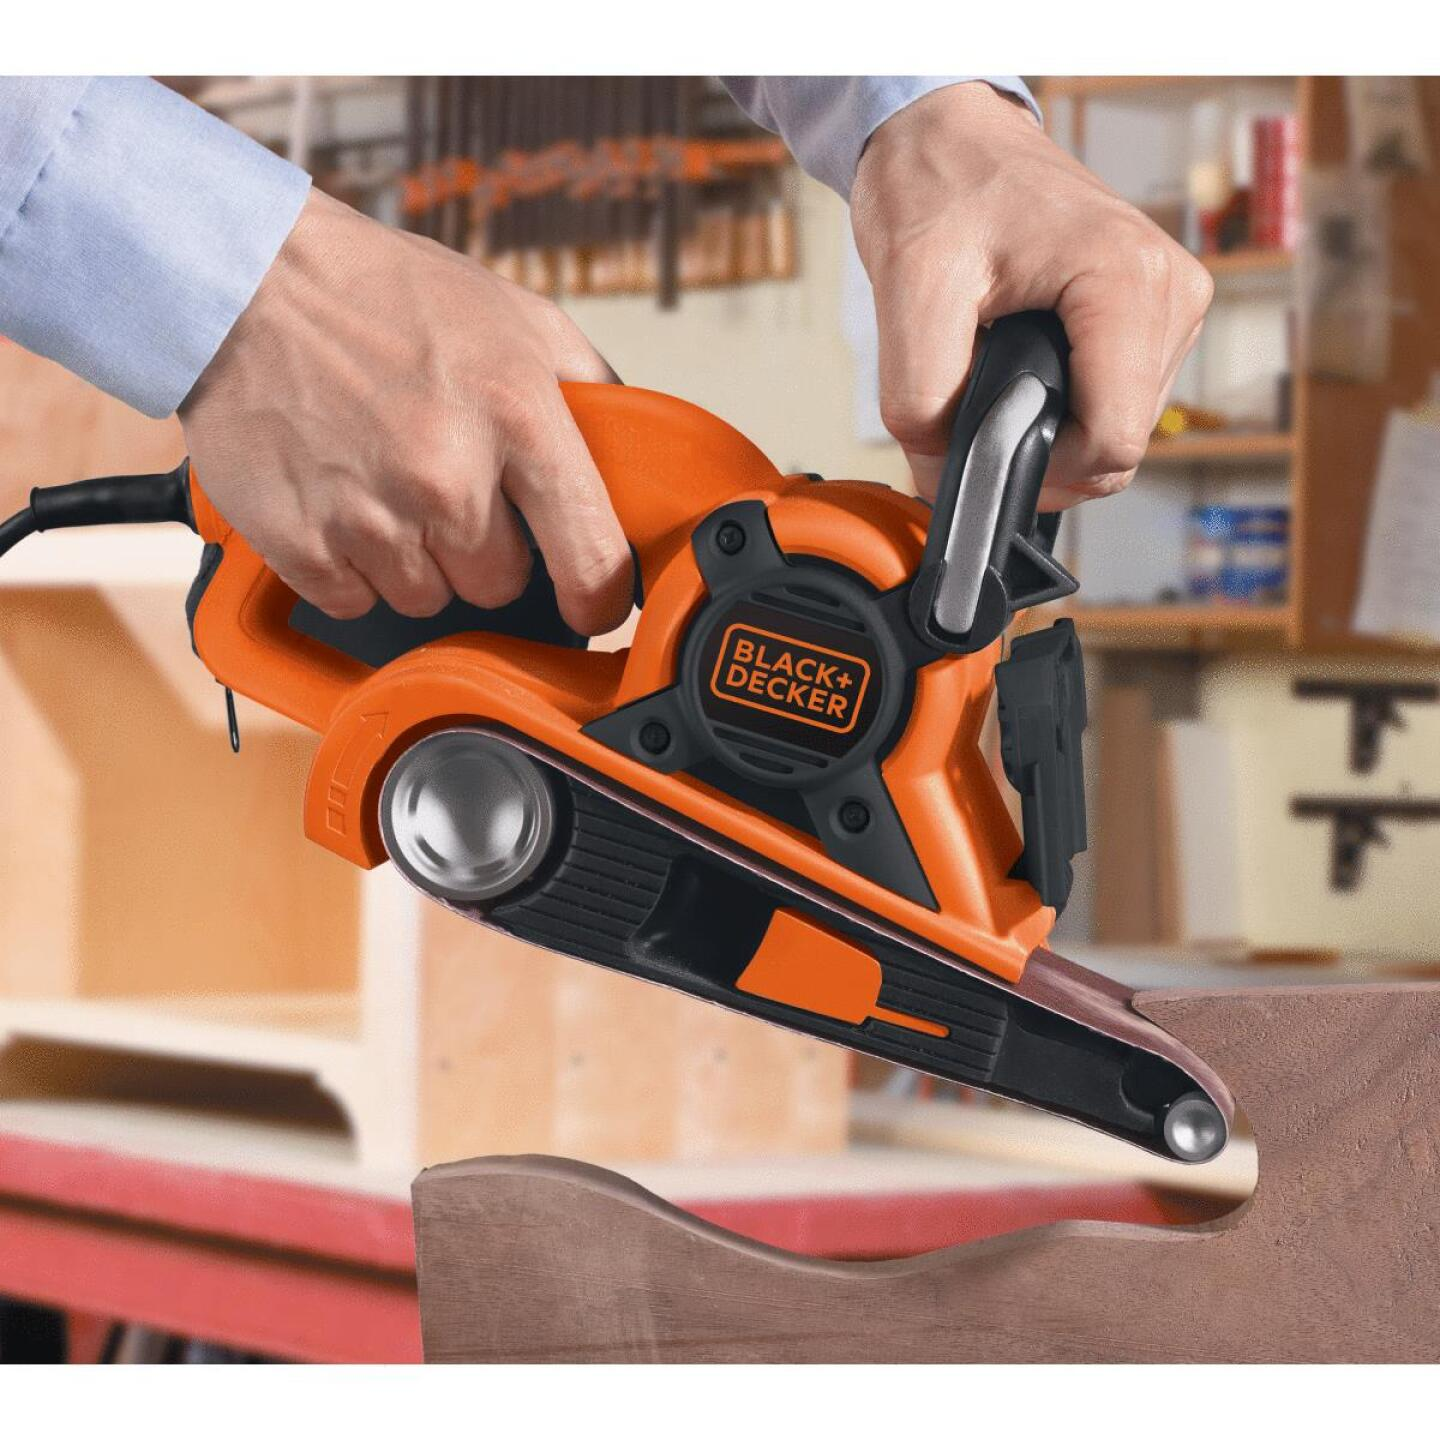 Black & Decker 3 In. x 21 In. Dragster Belt Sander Image 3